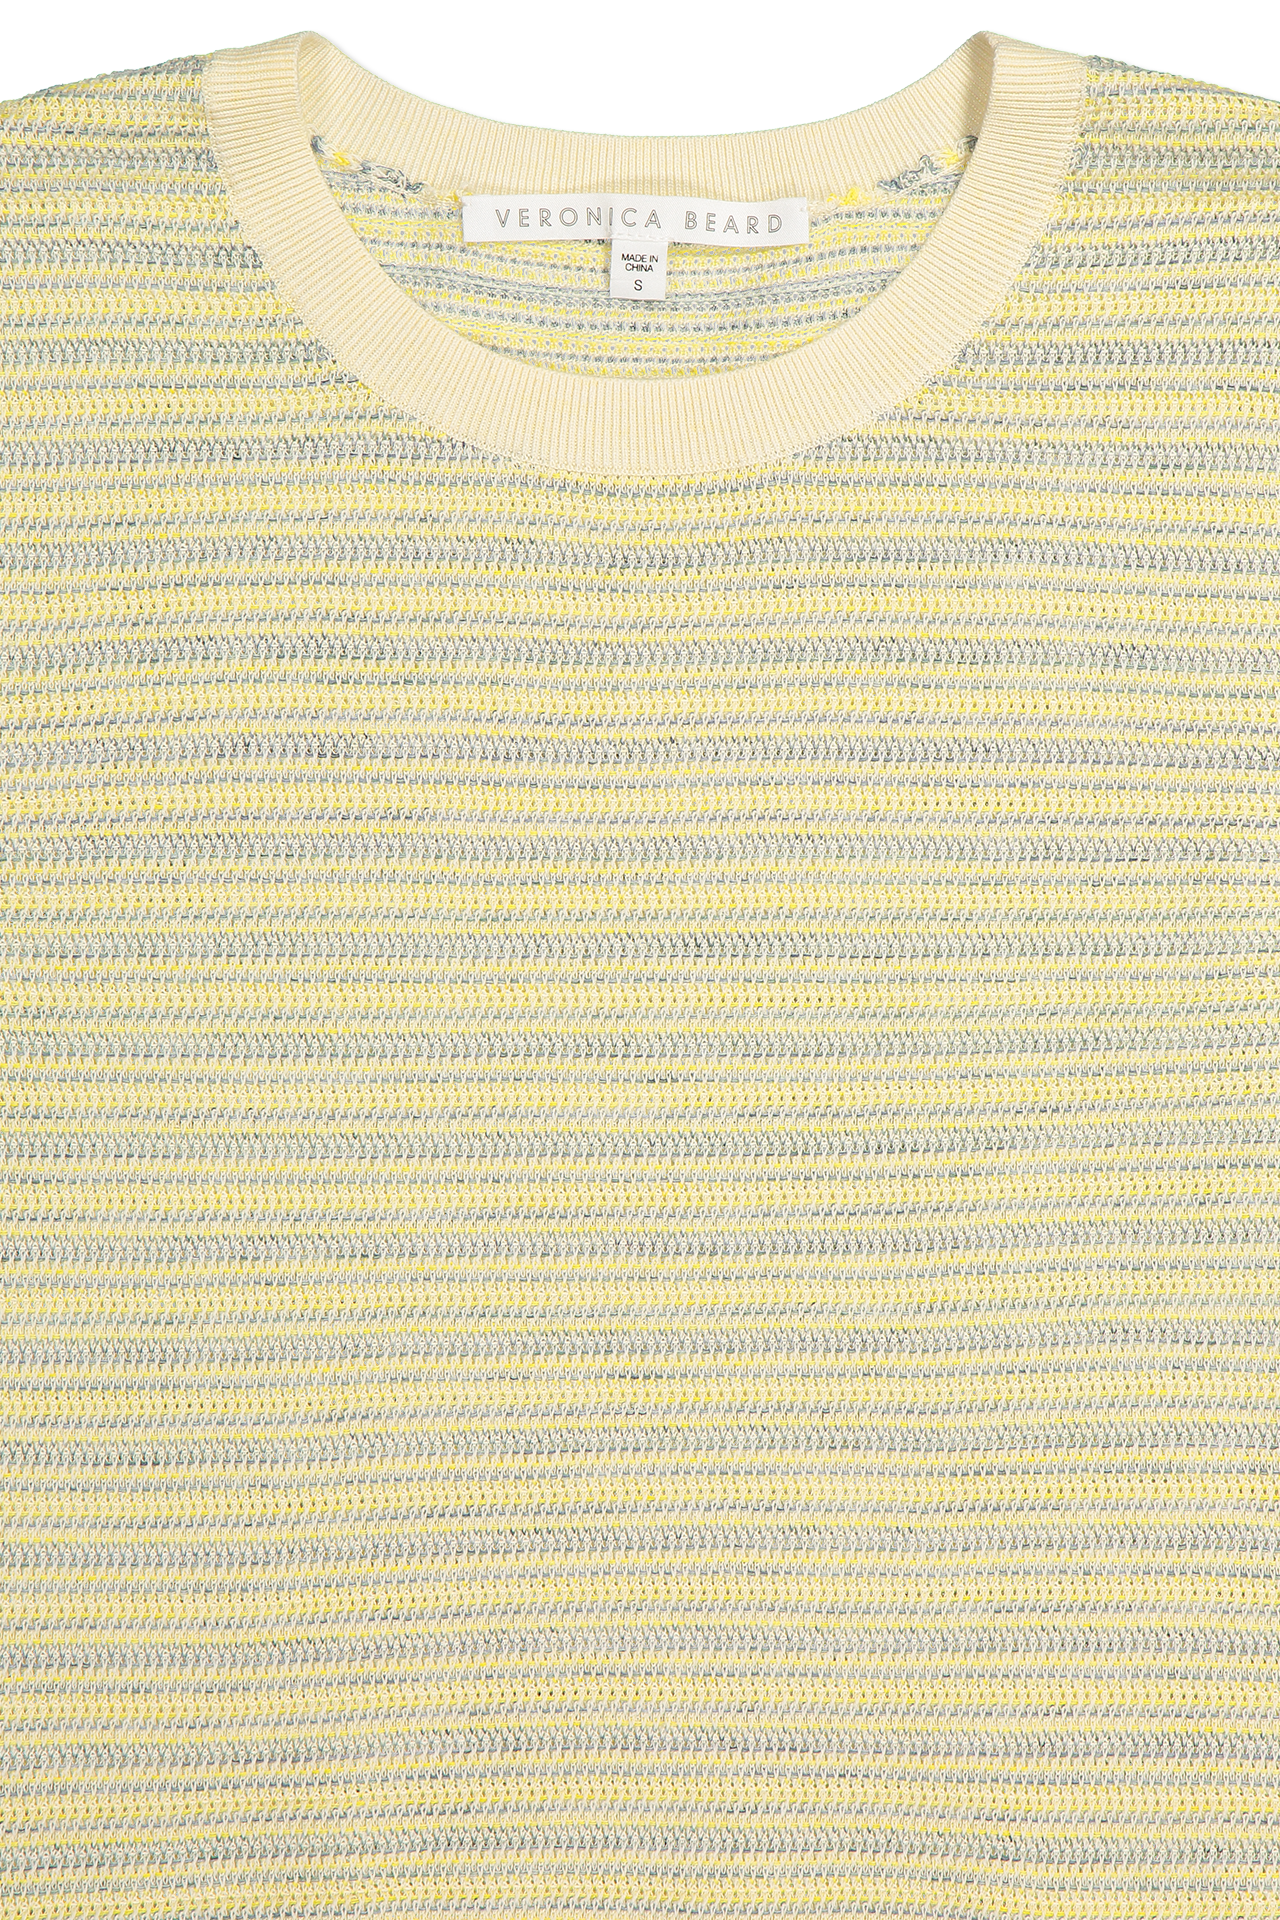 Crew neckline detail image of Veronica Beard Boise Sweater